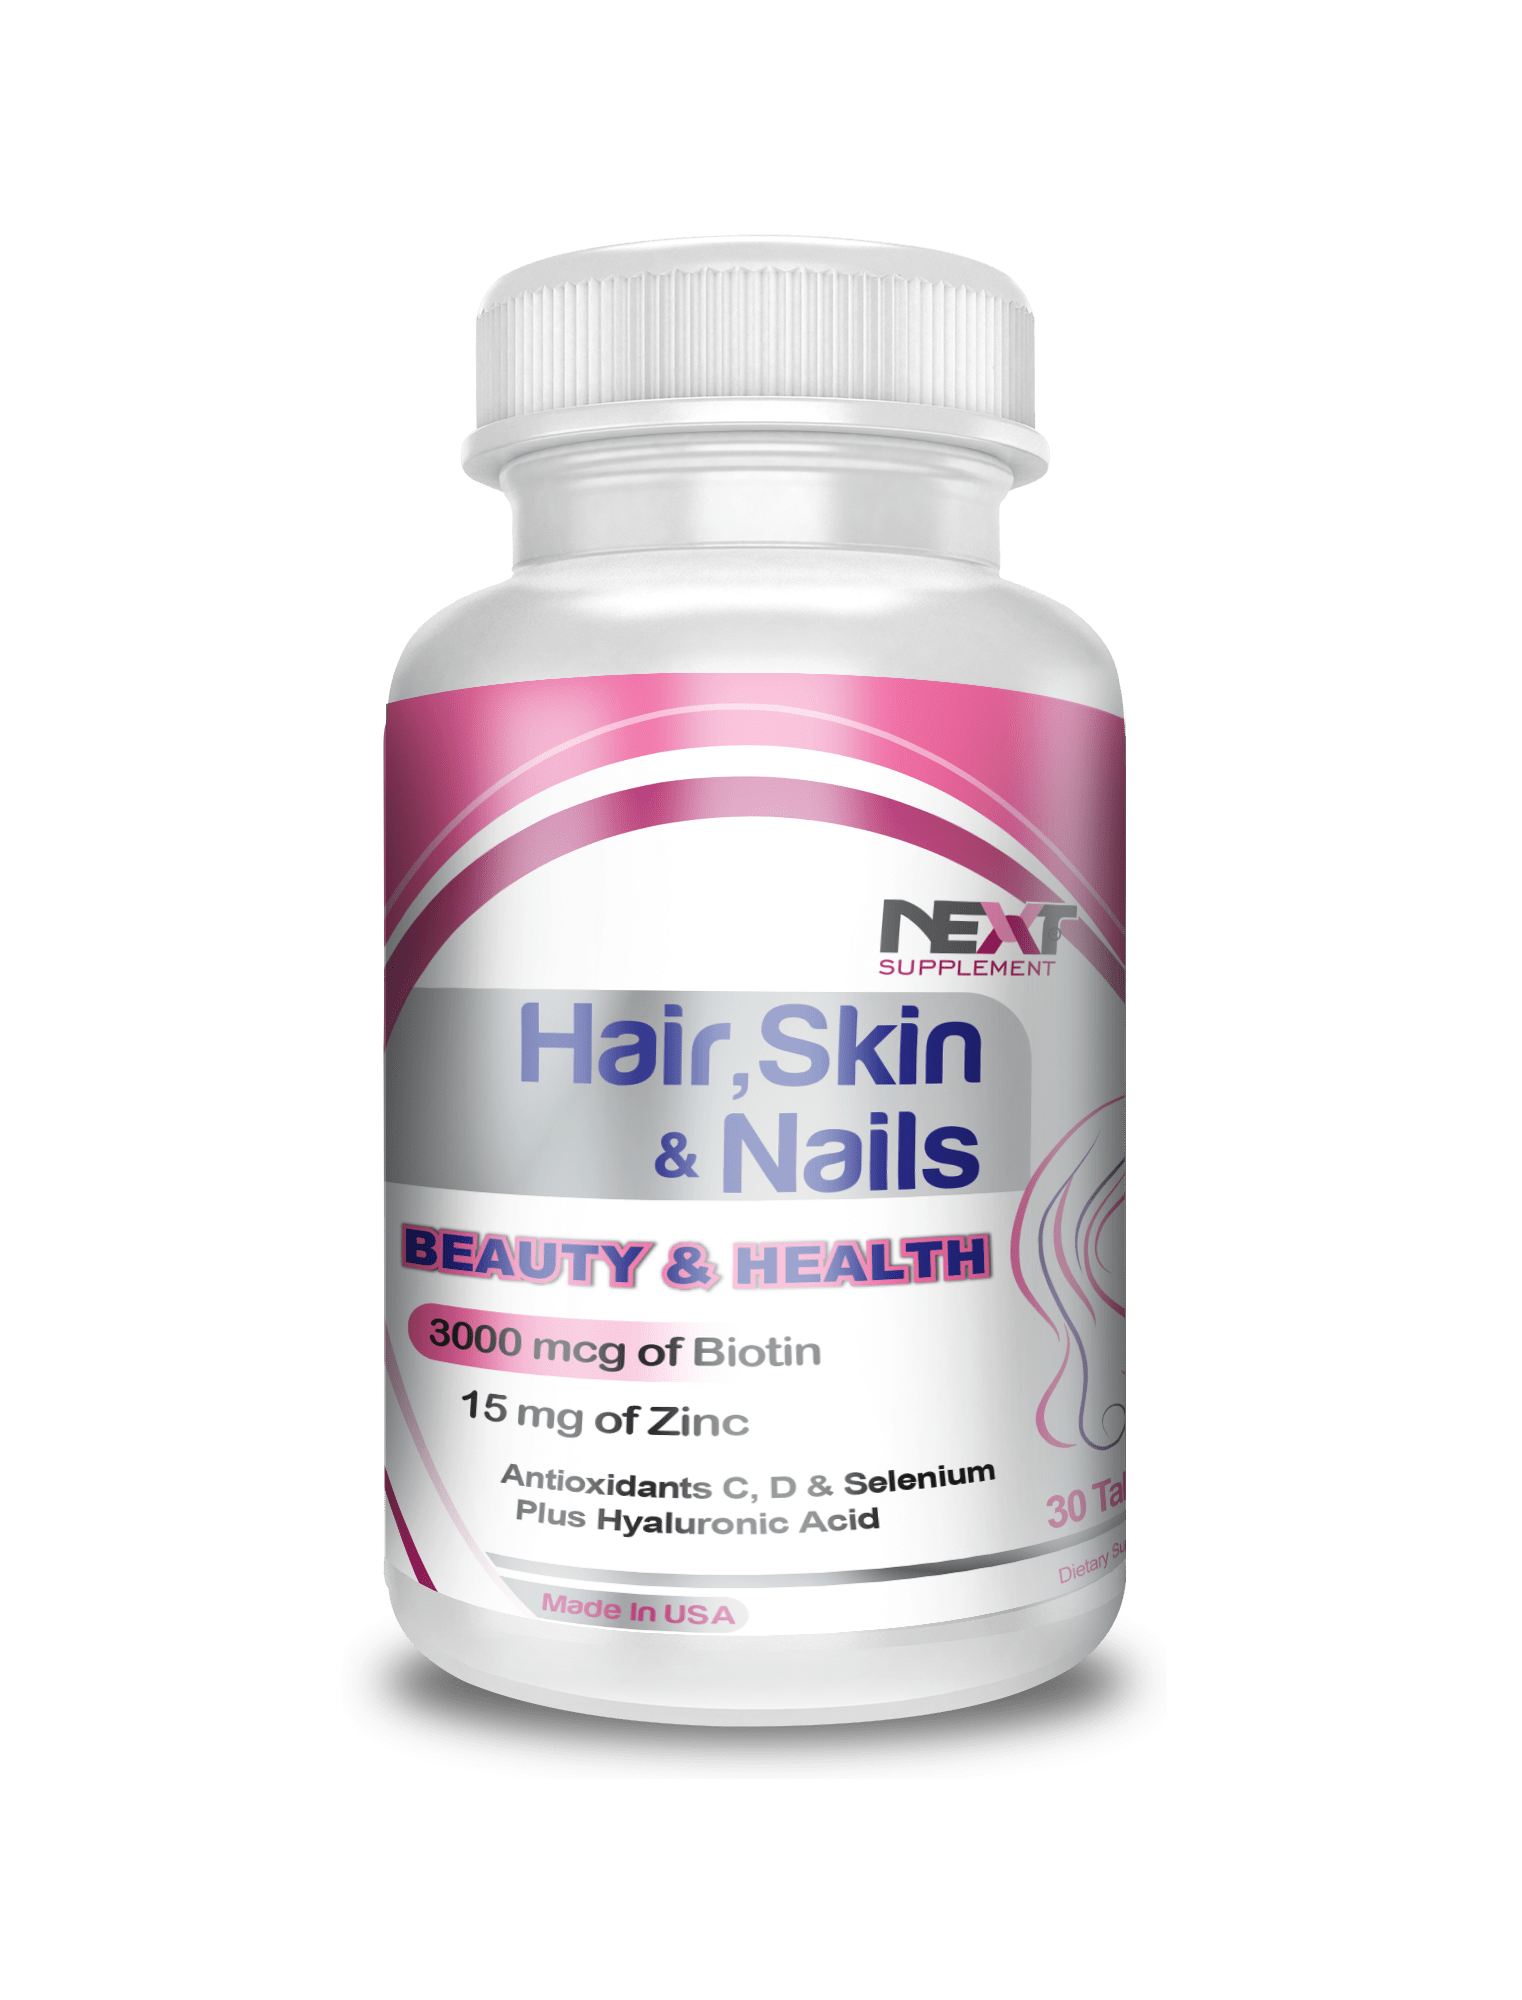 NextSupplement-Hair-Skin-Nails- هیراسکین نیلز